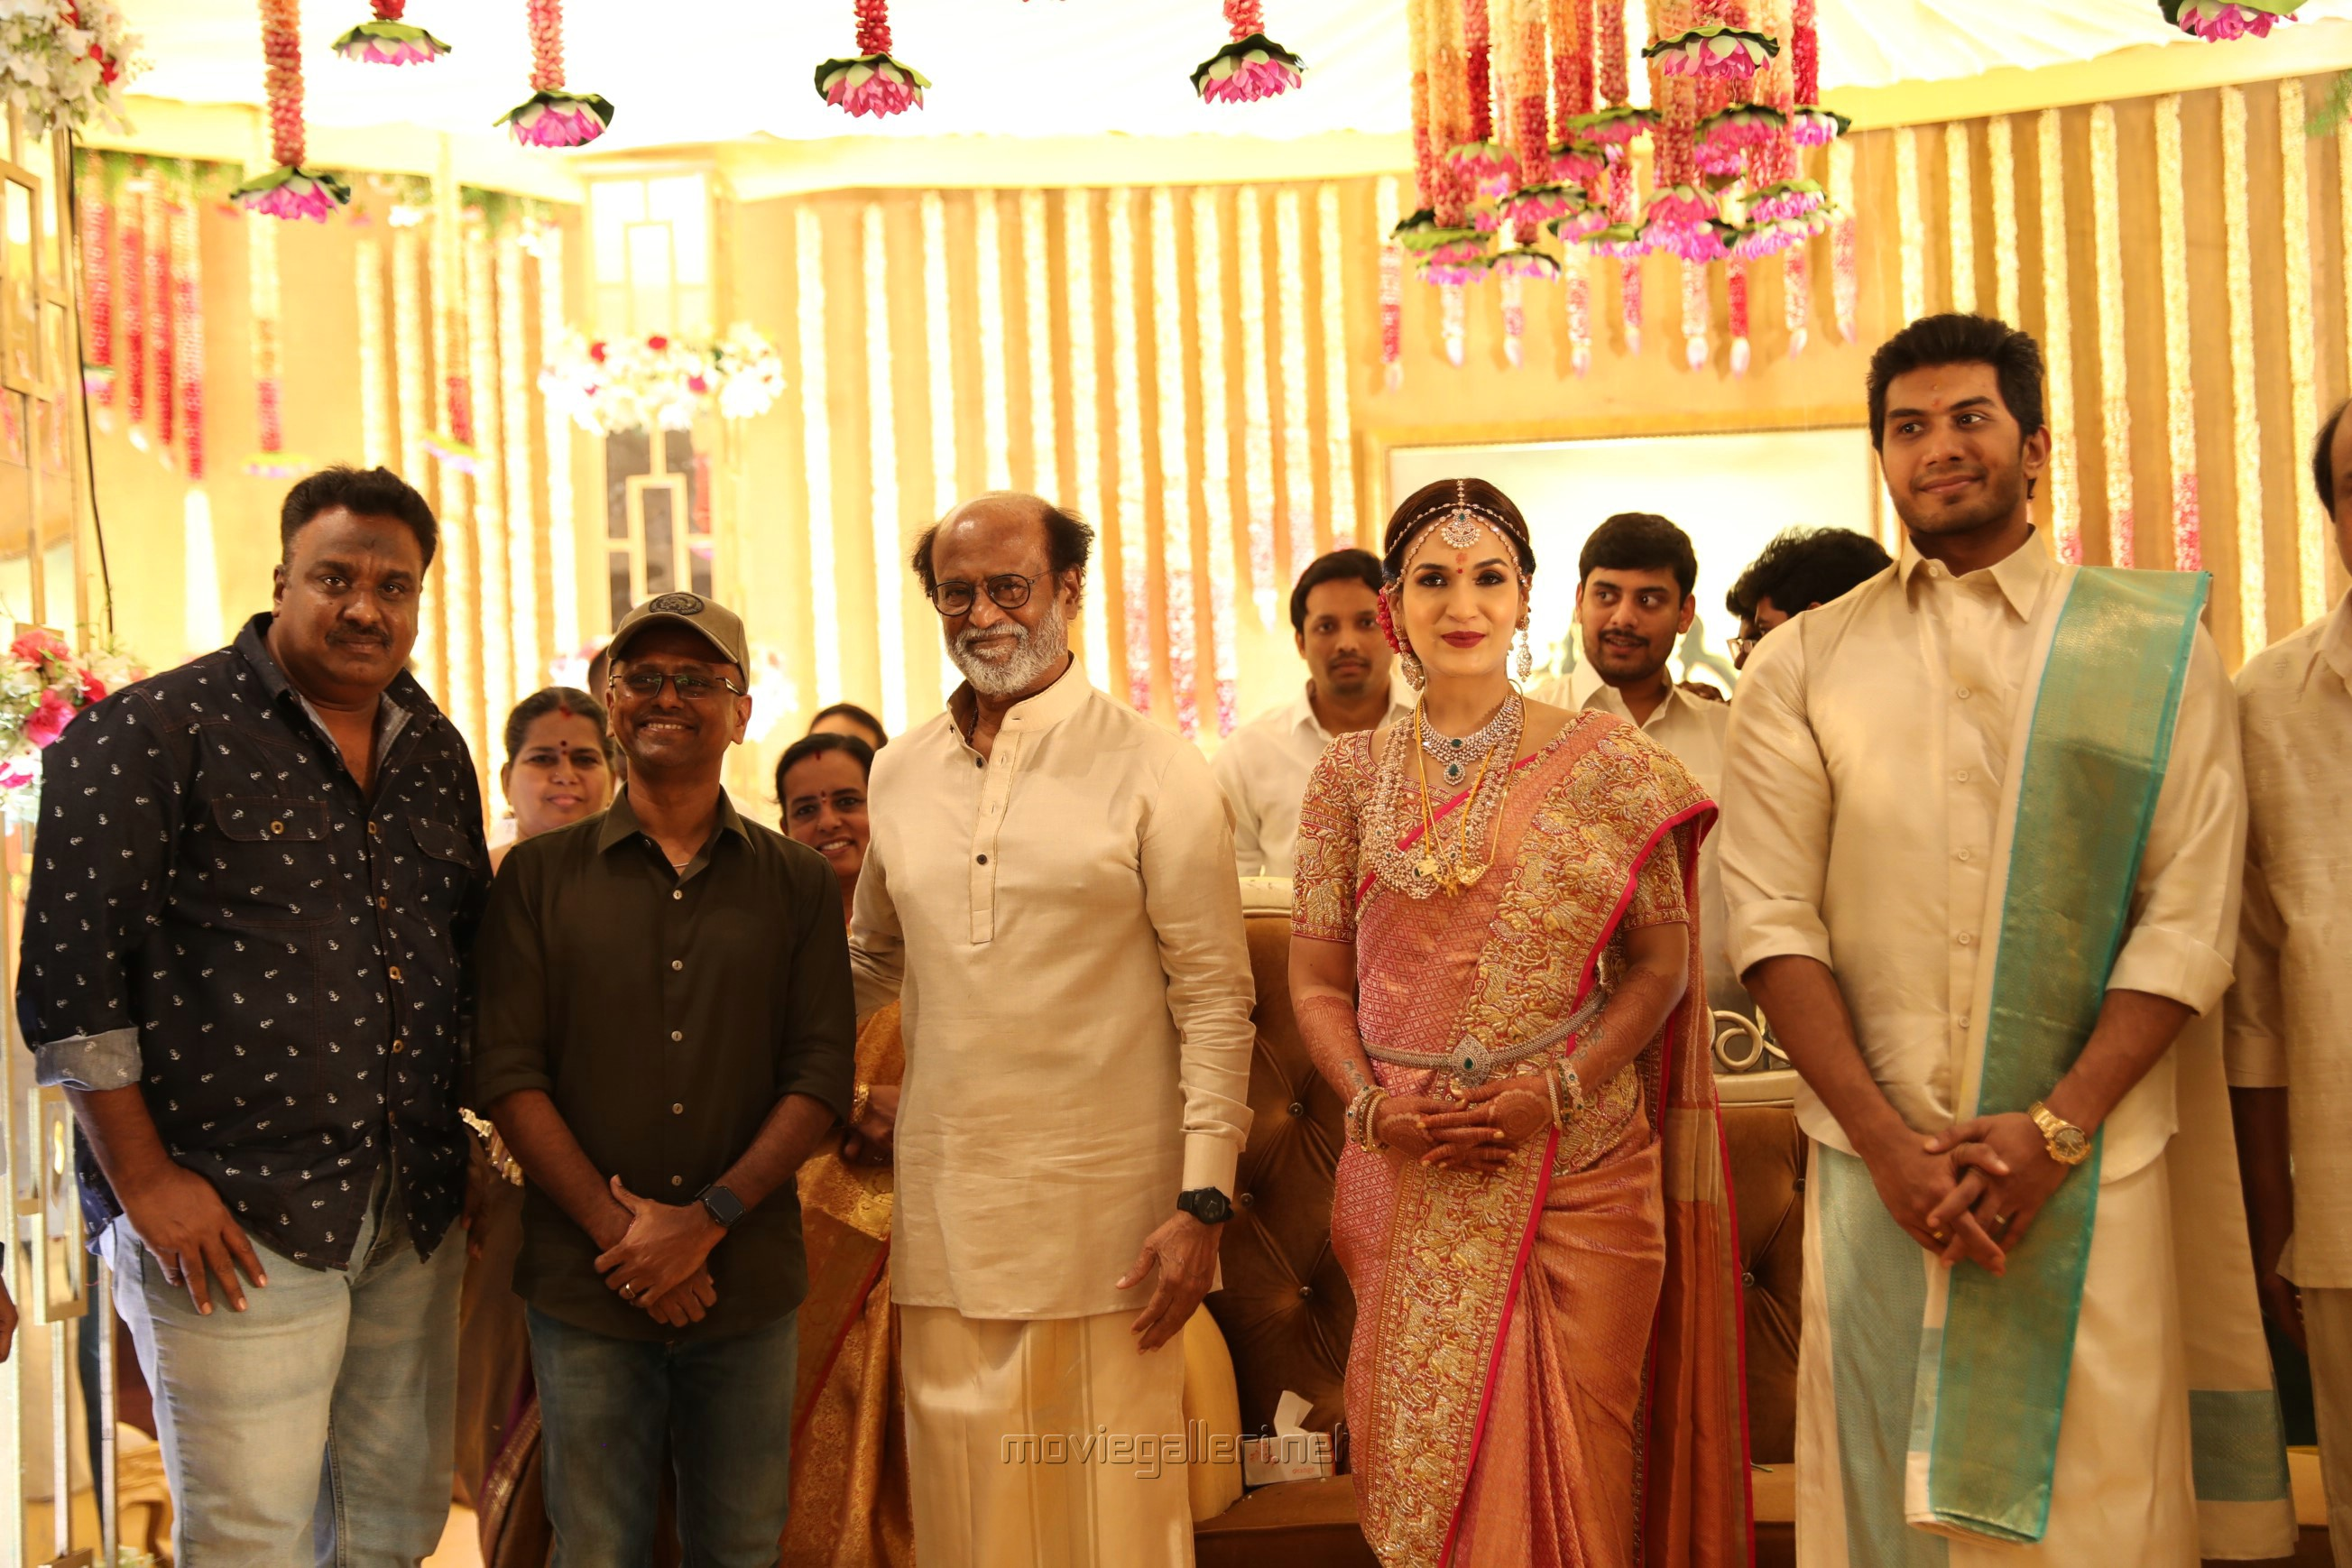 AR Murugadoss @ Vishagan Soundarya Rajinikanth Marriage Photos HD